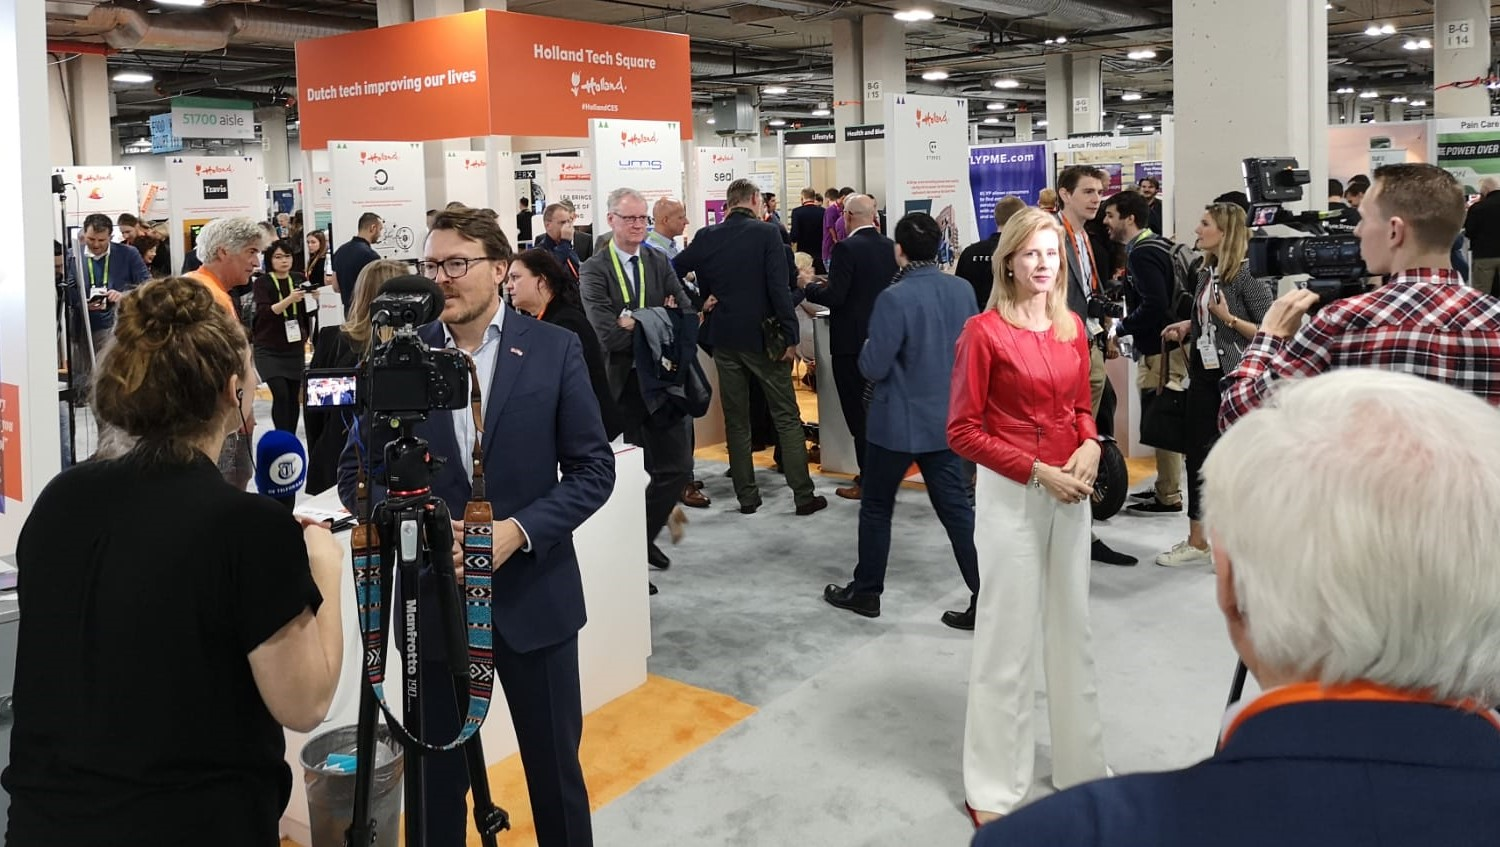 Constantijn van Oranje, Mona Keijzer open Holland Tech Square at CES